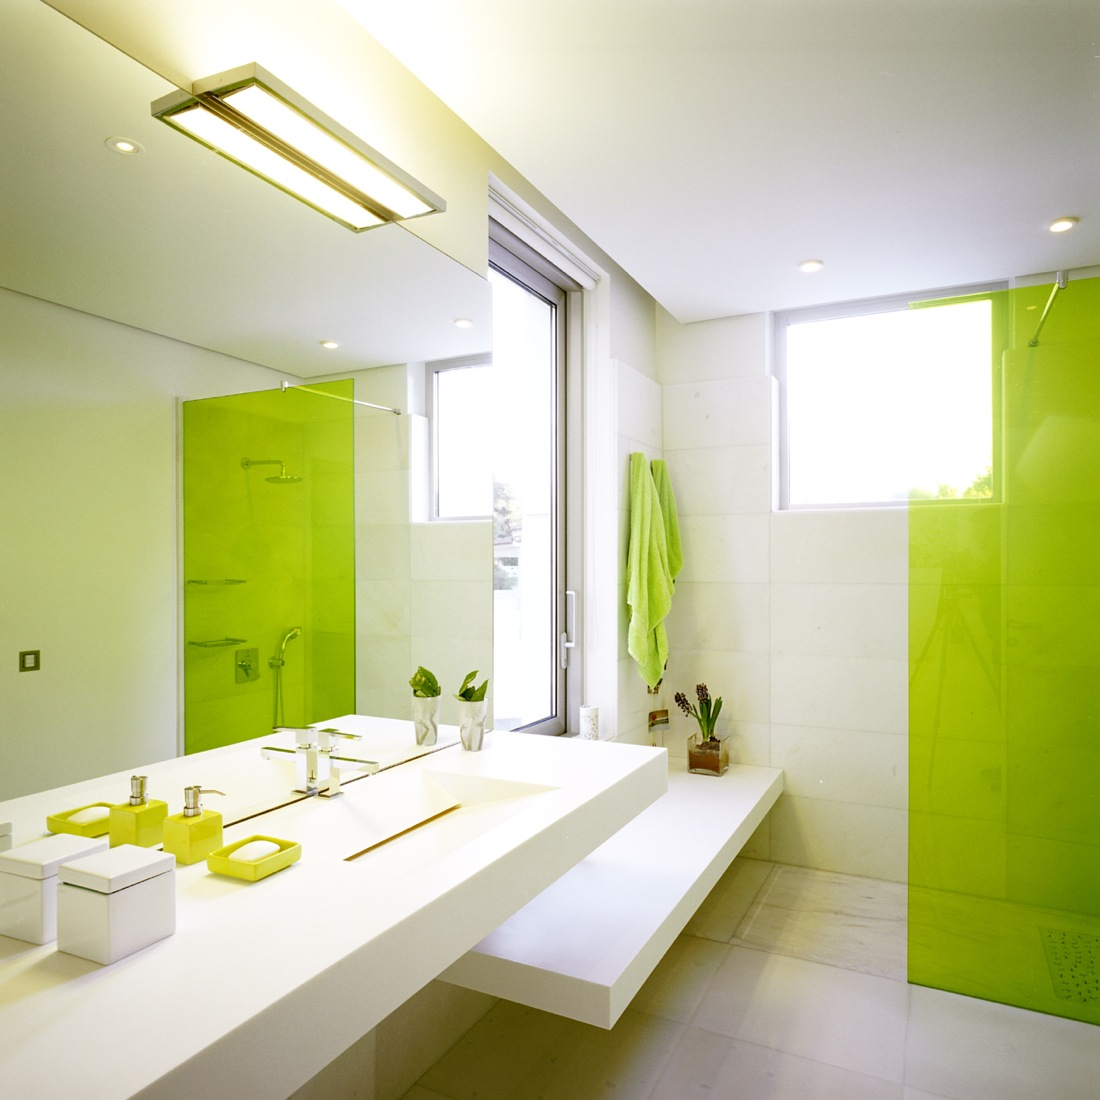 Minimalist bathroom designs home designs project for Bathroom interior design